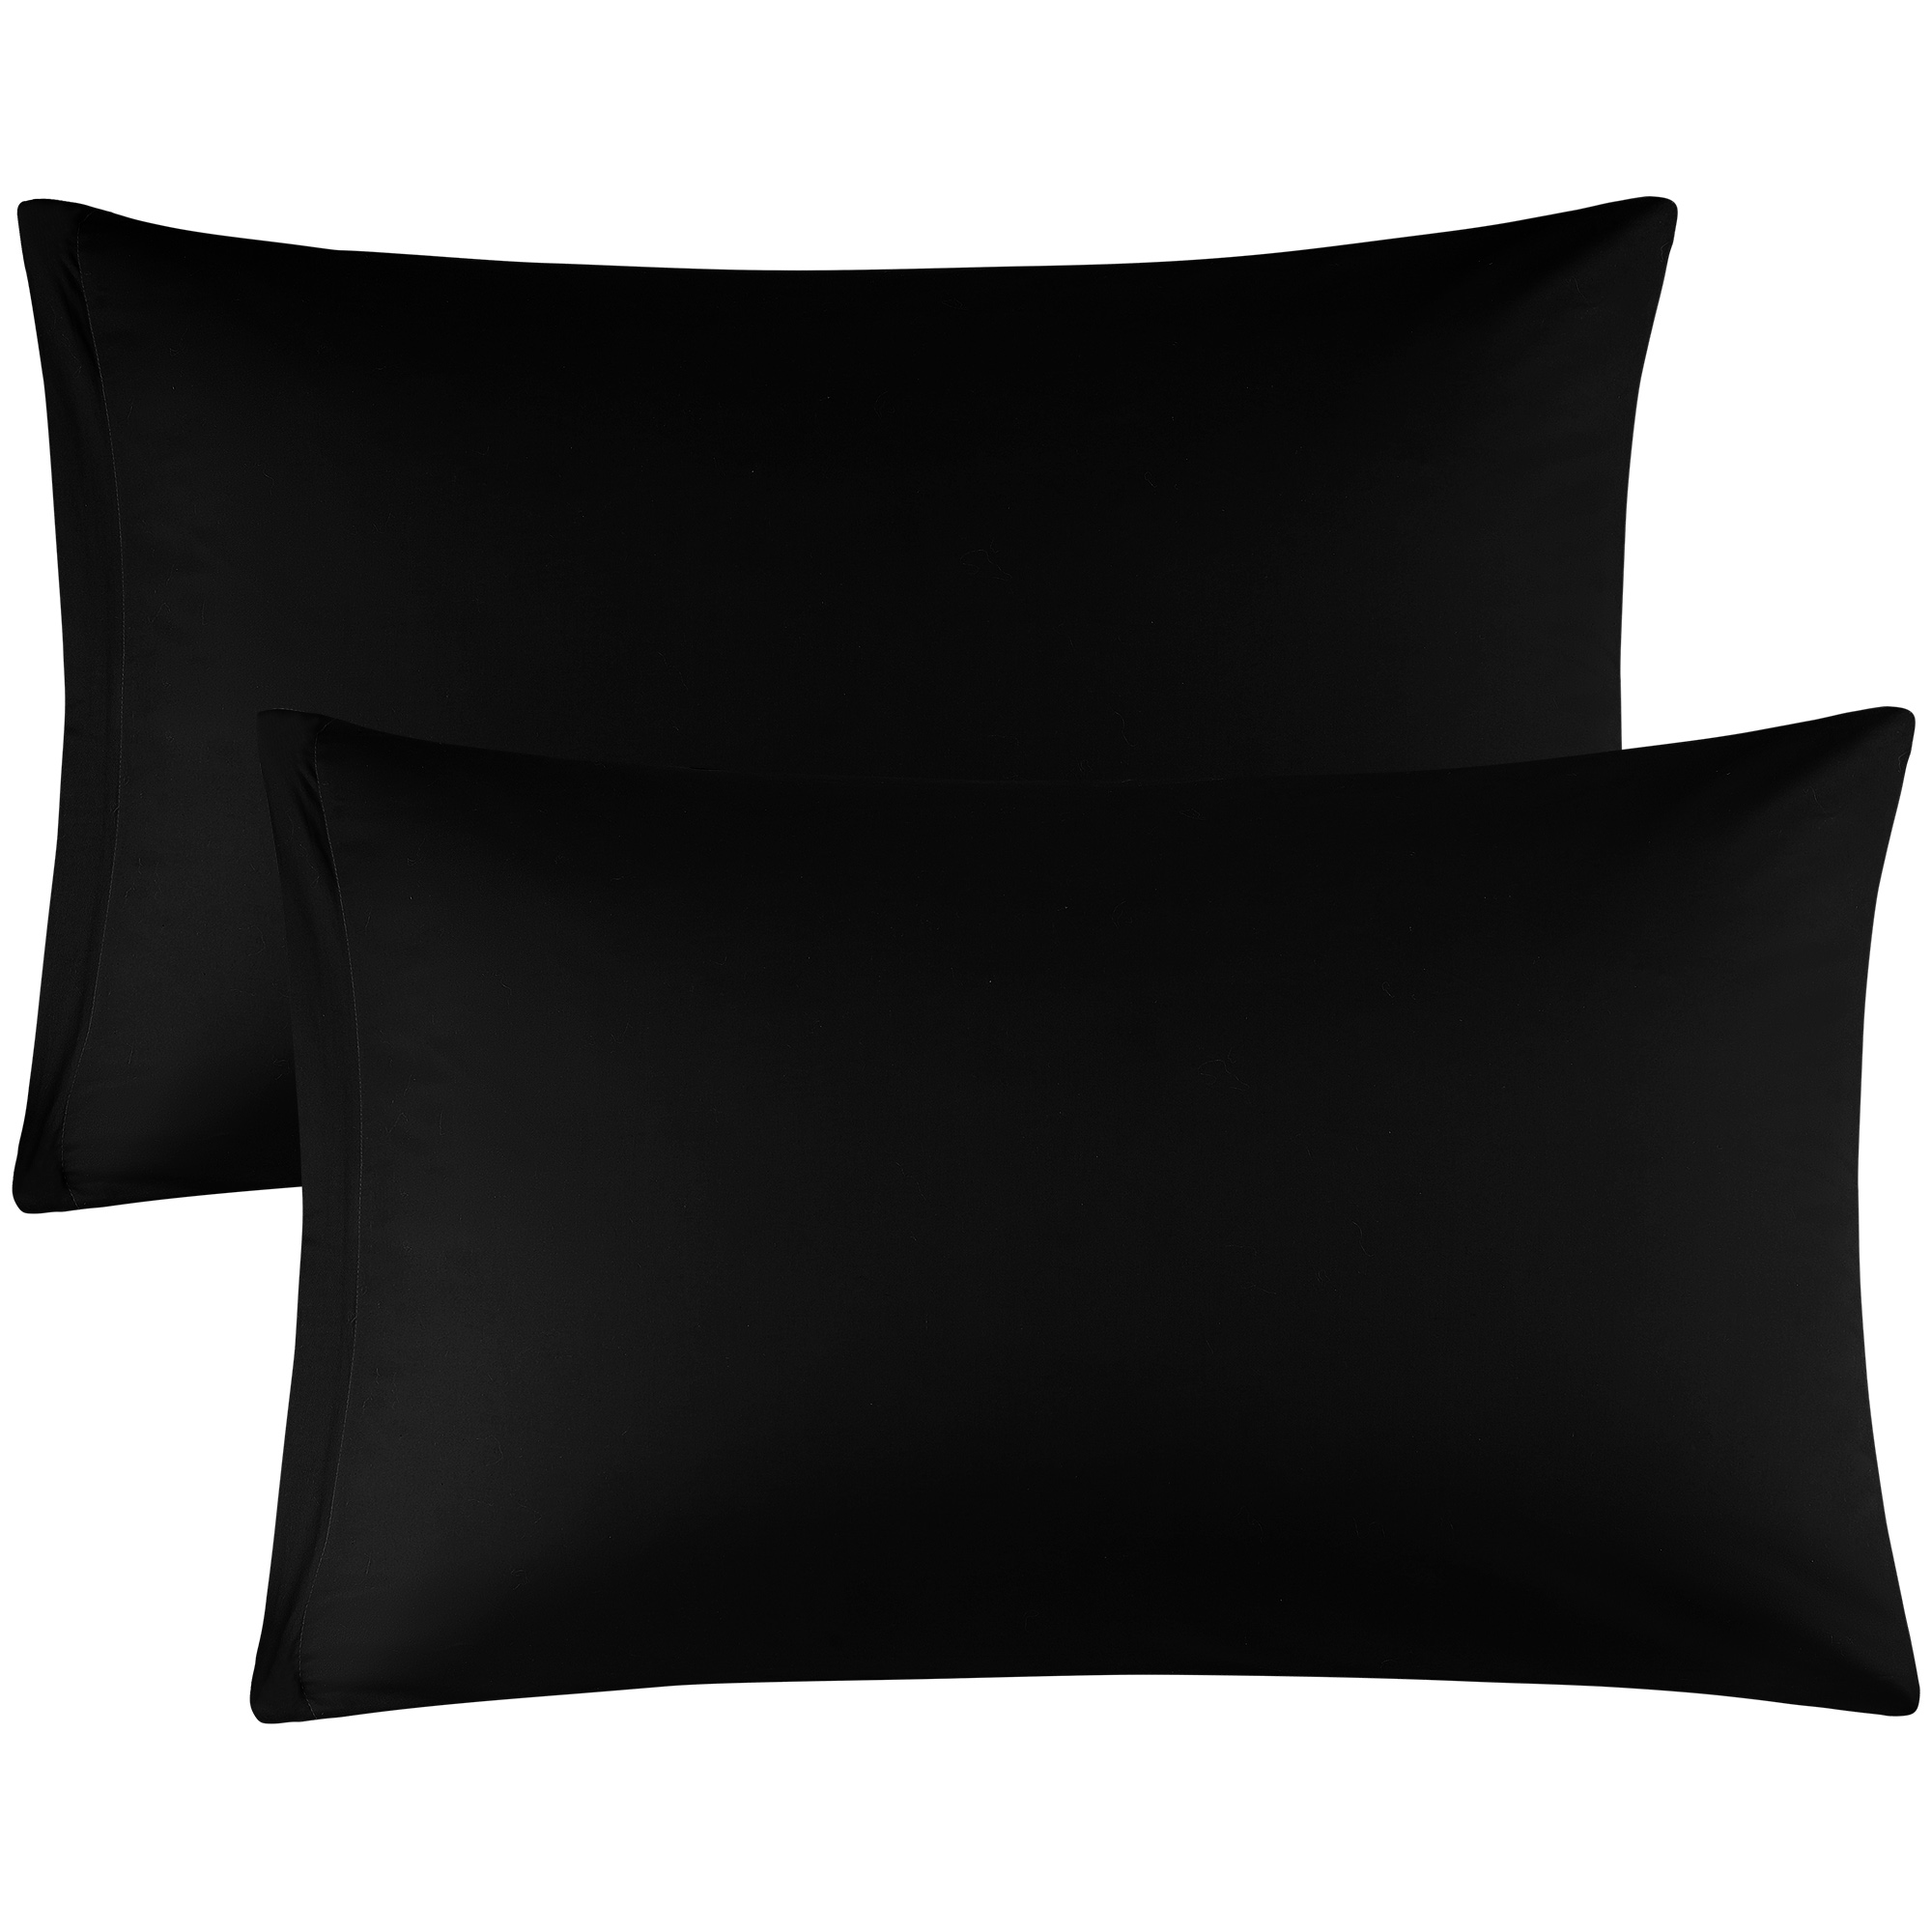 Zippered Cases Pillowcases Covers Egyptian Cotton 2-Pack (20 x 26 Inch, Black)